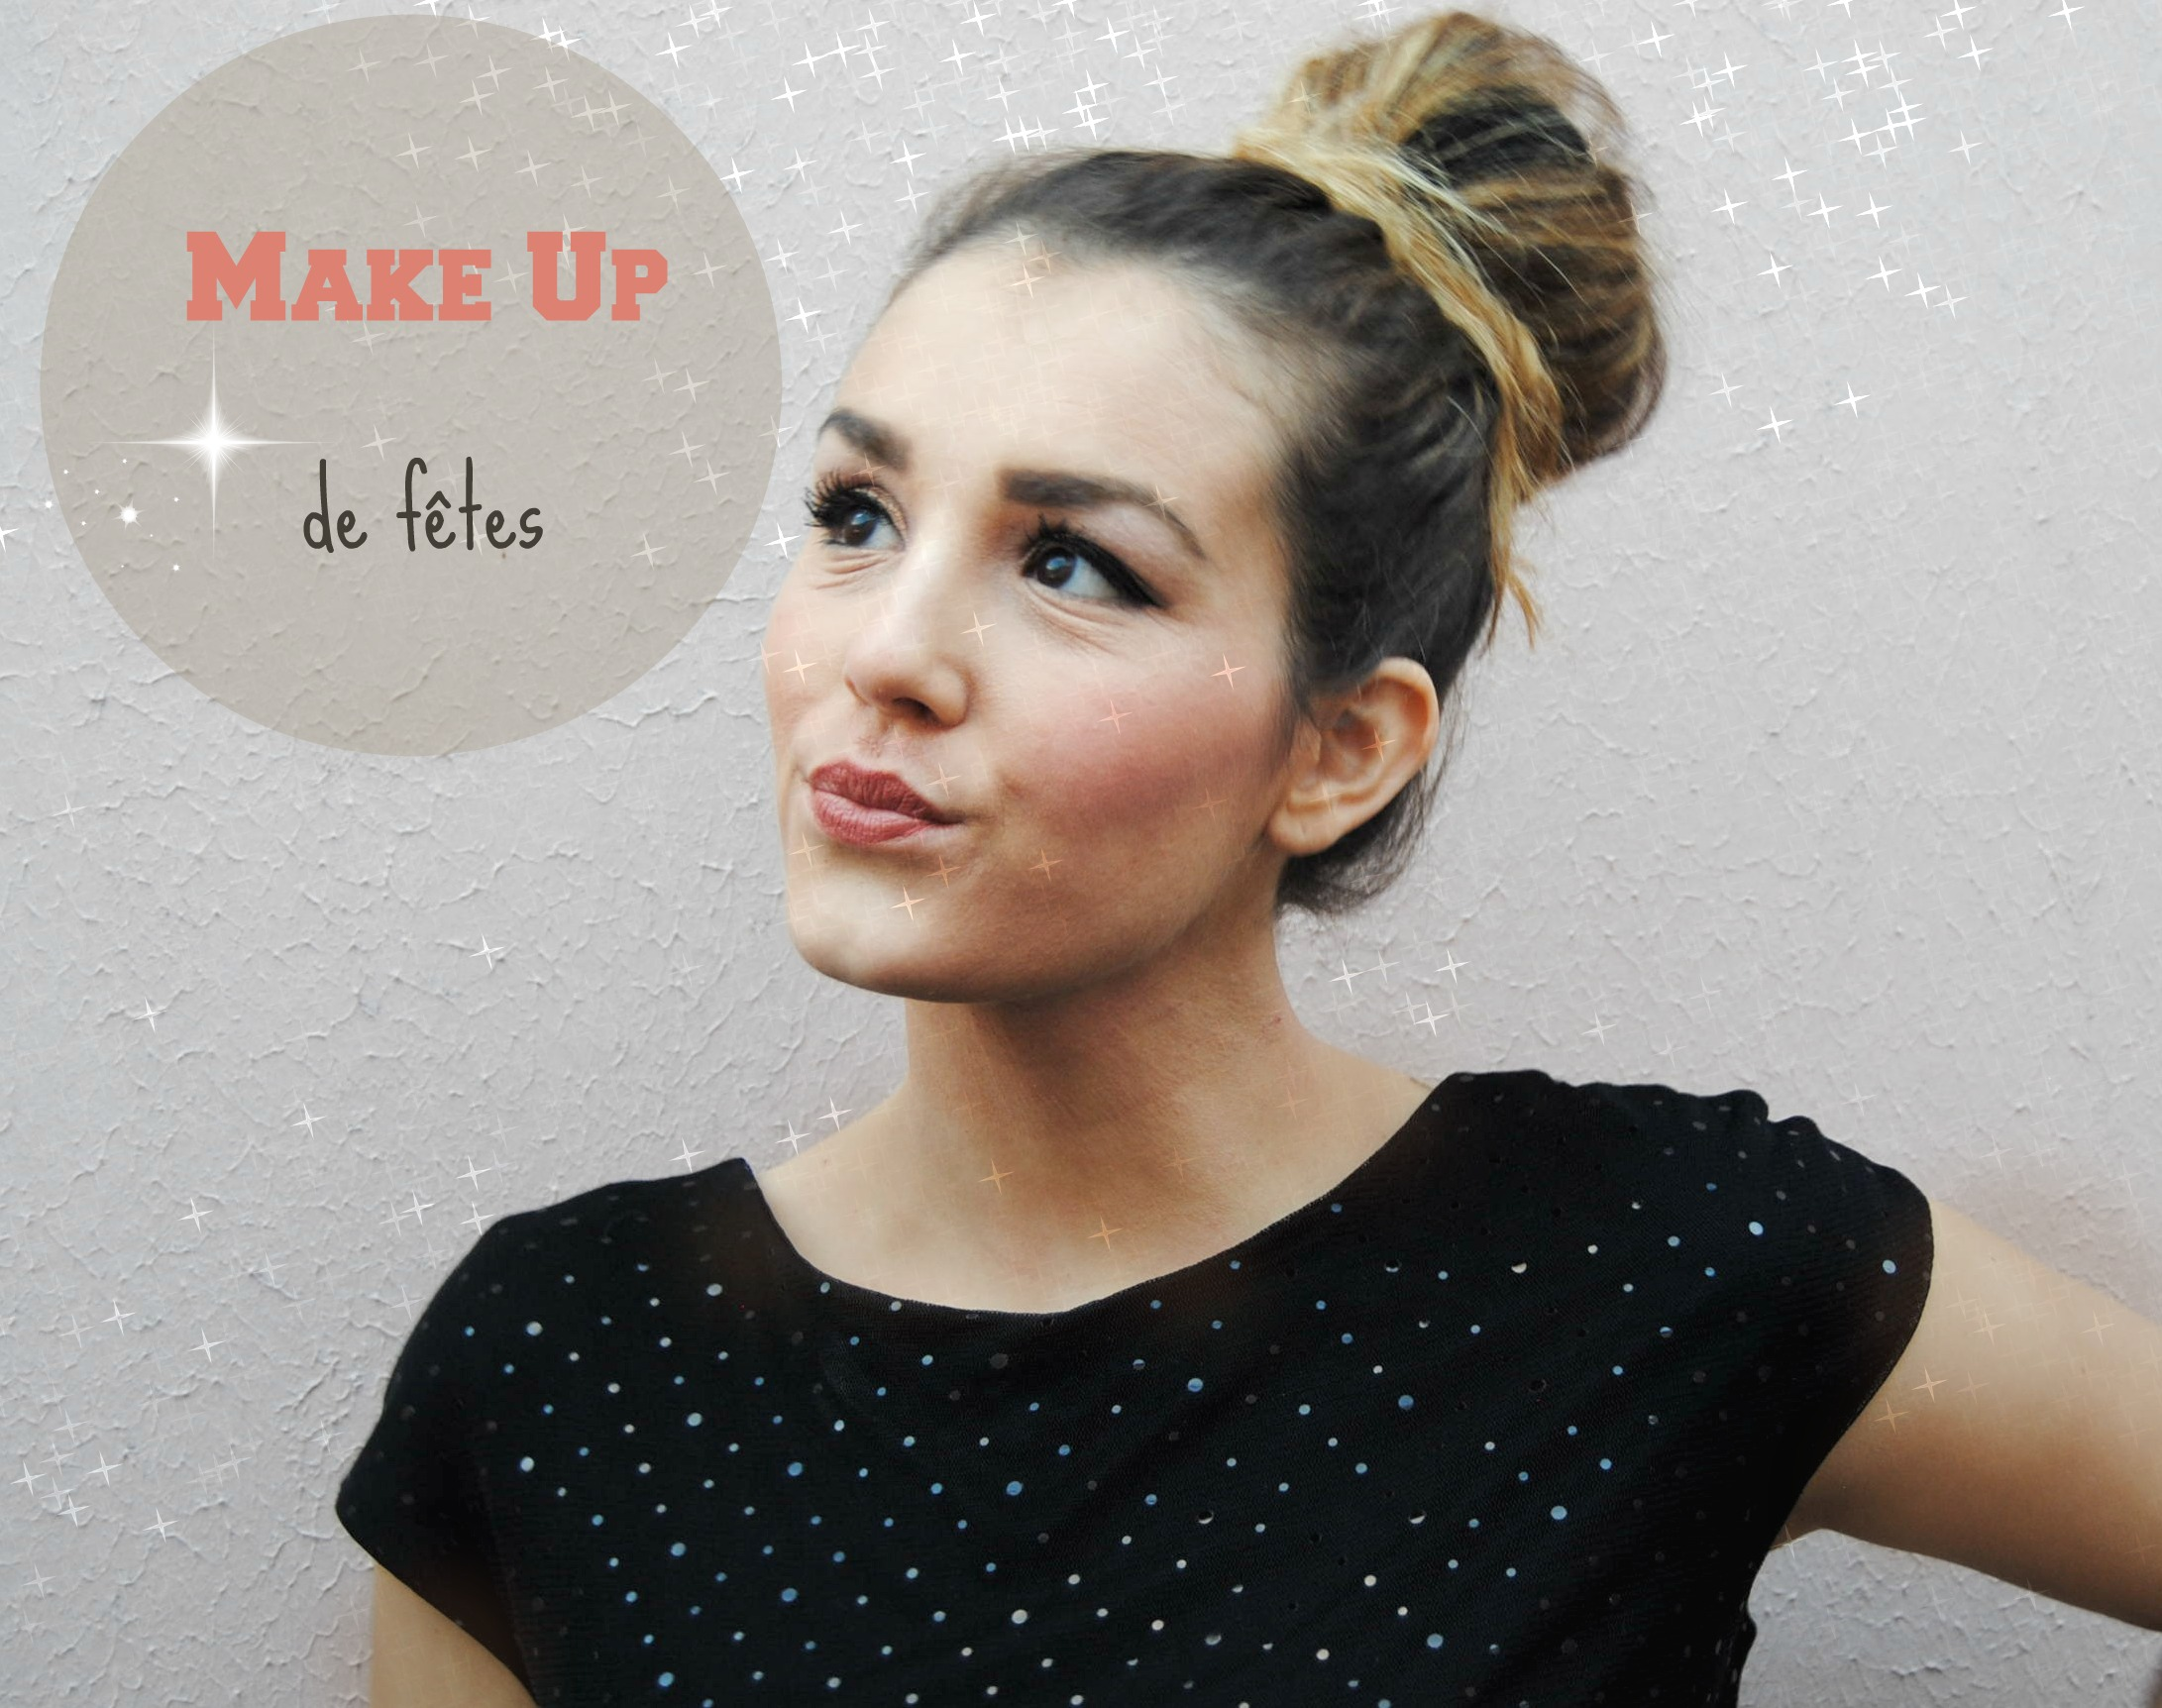 Make Up de fêtes ✨